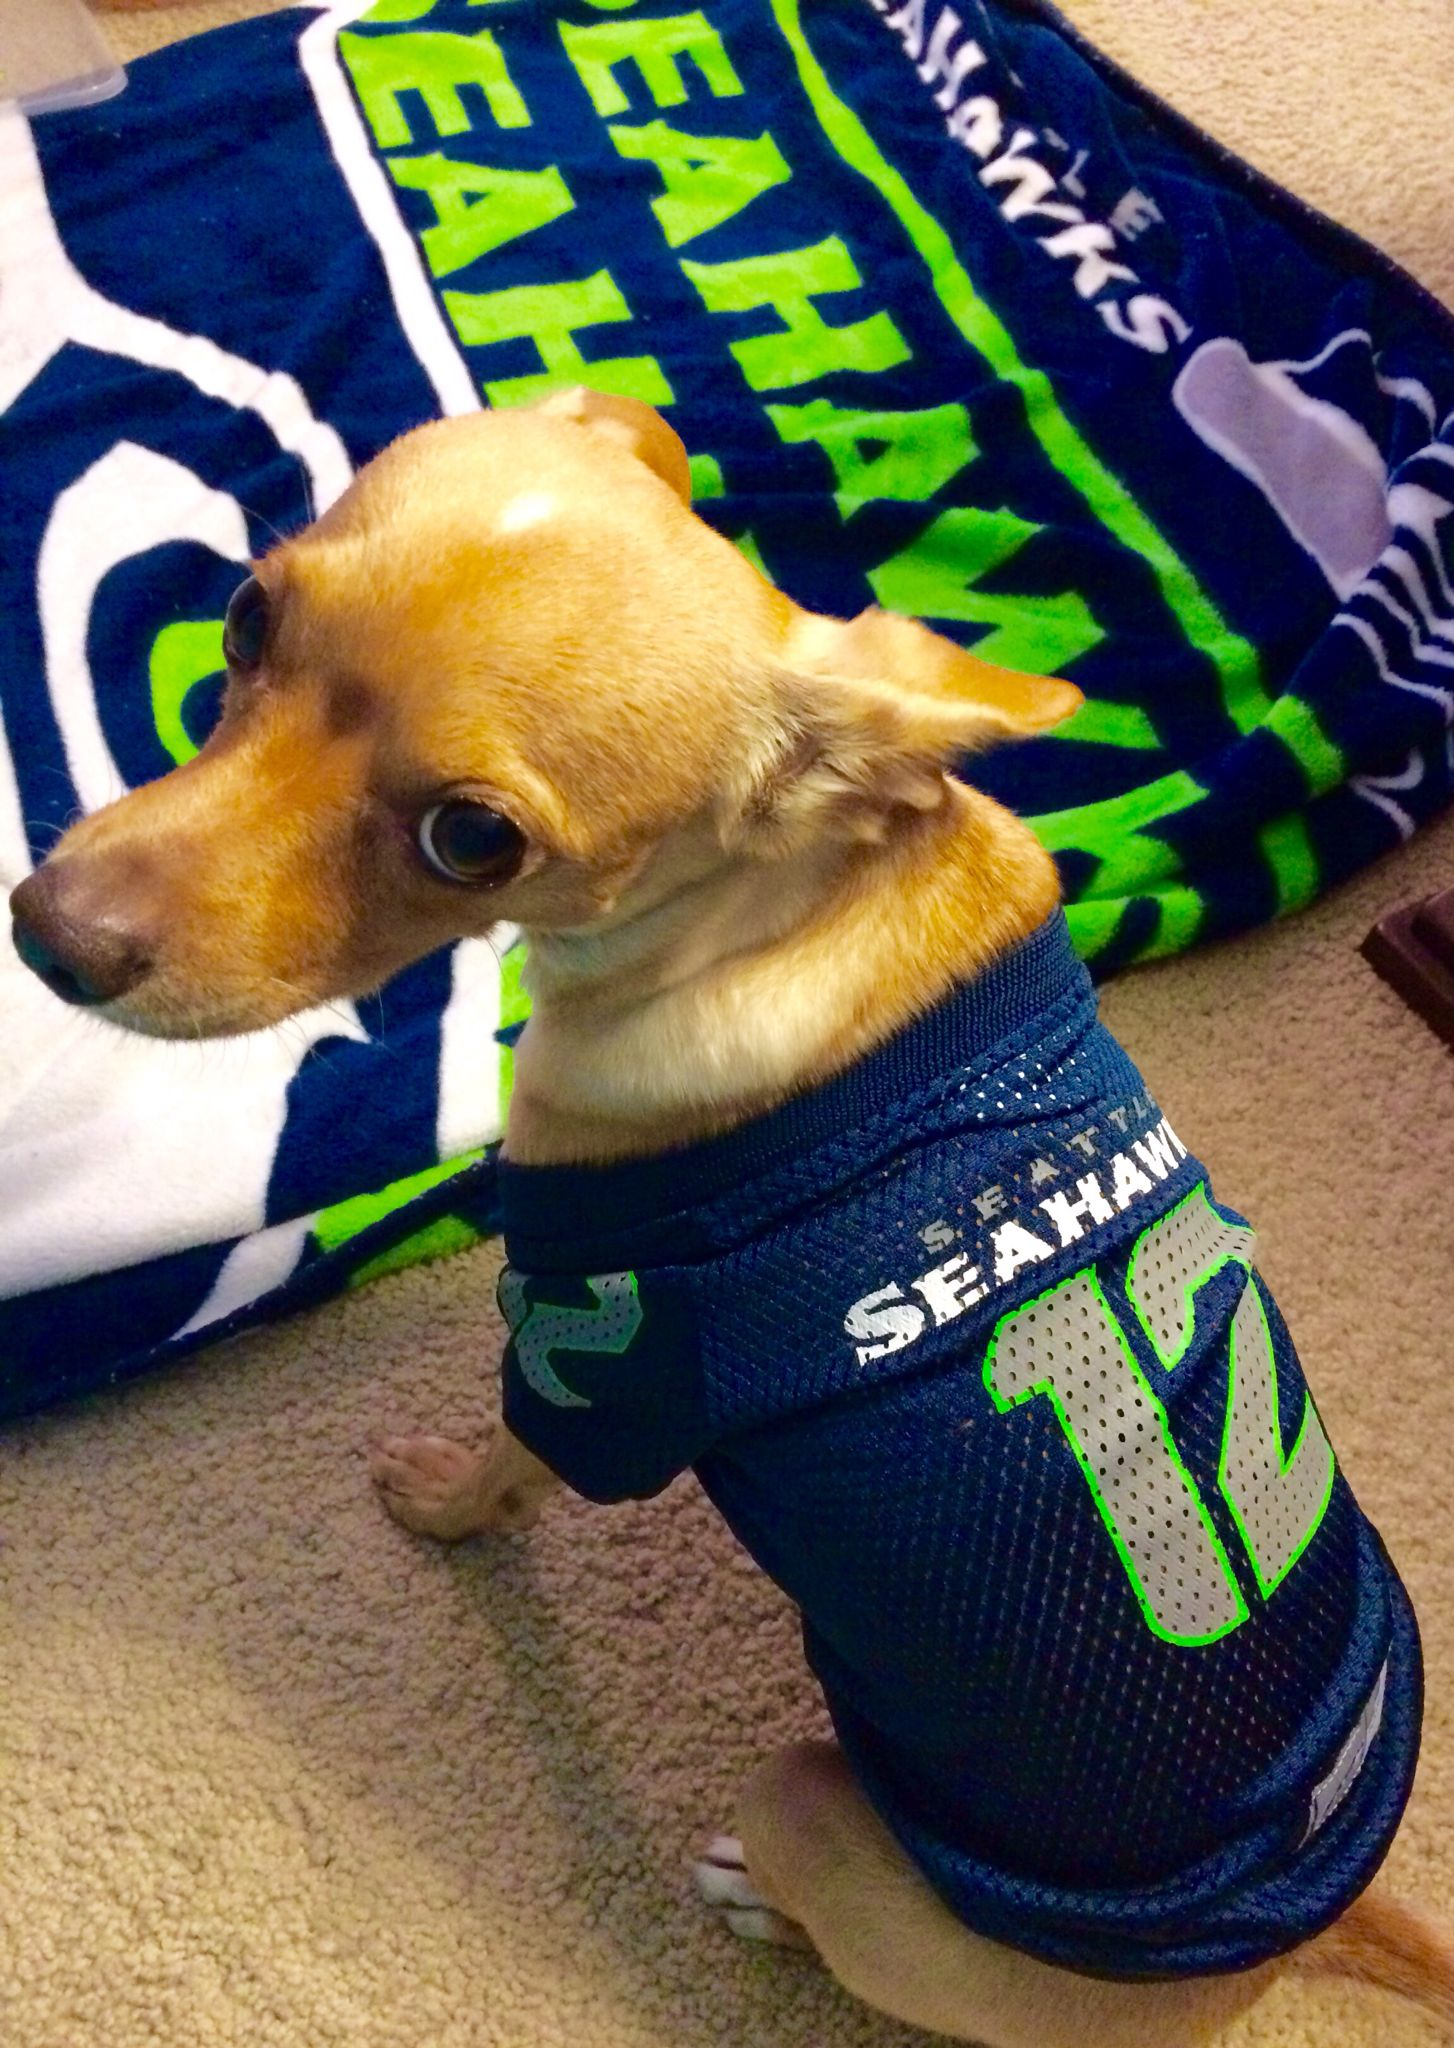 My Girl Charlie is THRILLED with her new #Seahawk jersey